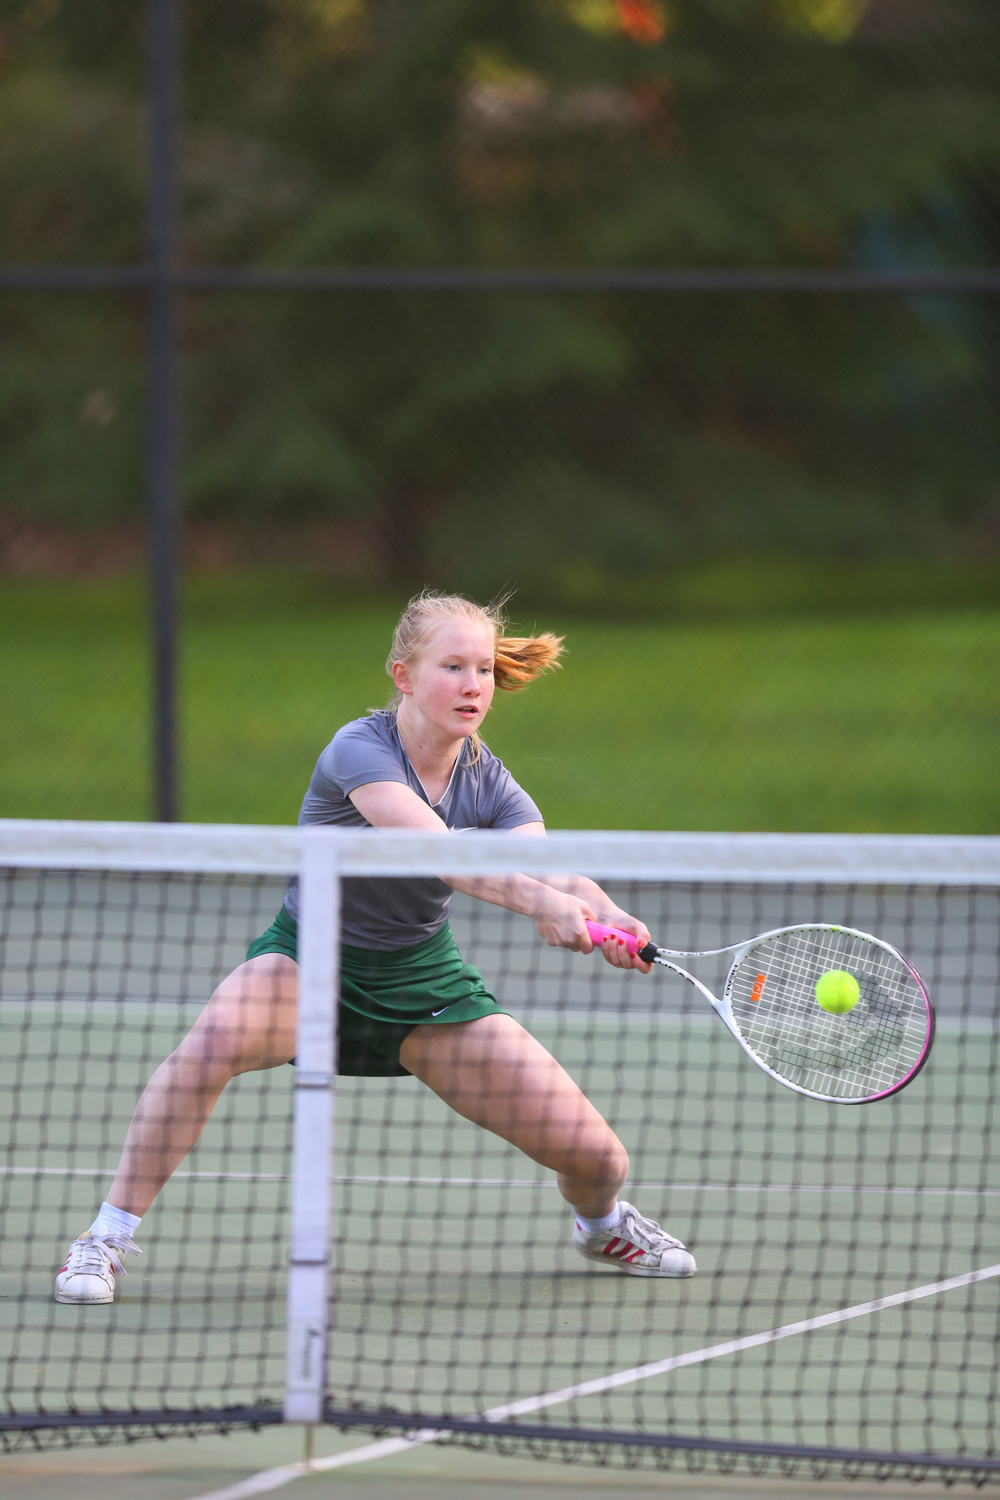 858-2016-03-24 Overlake Girls JV Tennis v Forest Ridge-880.jpg